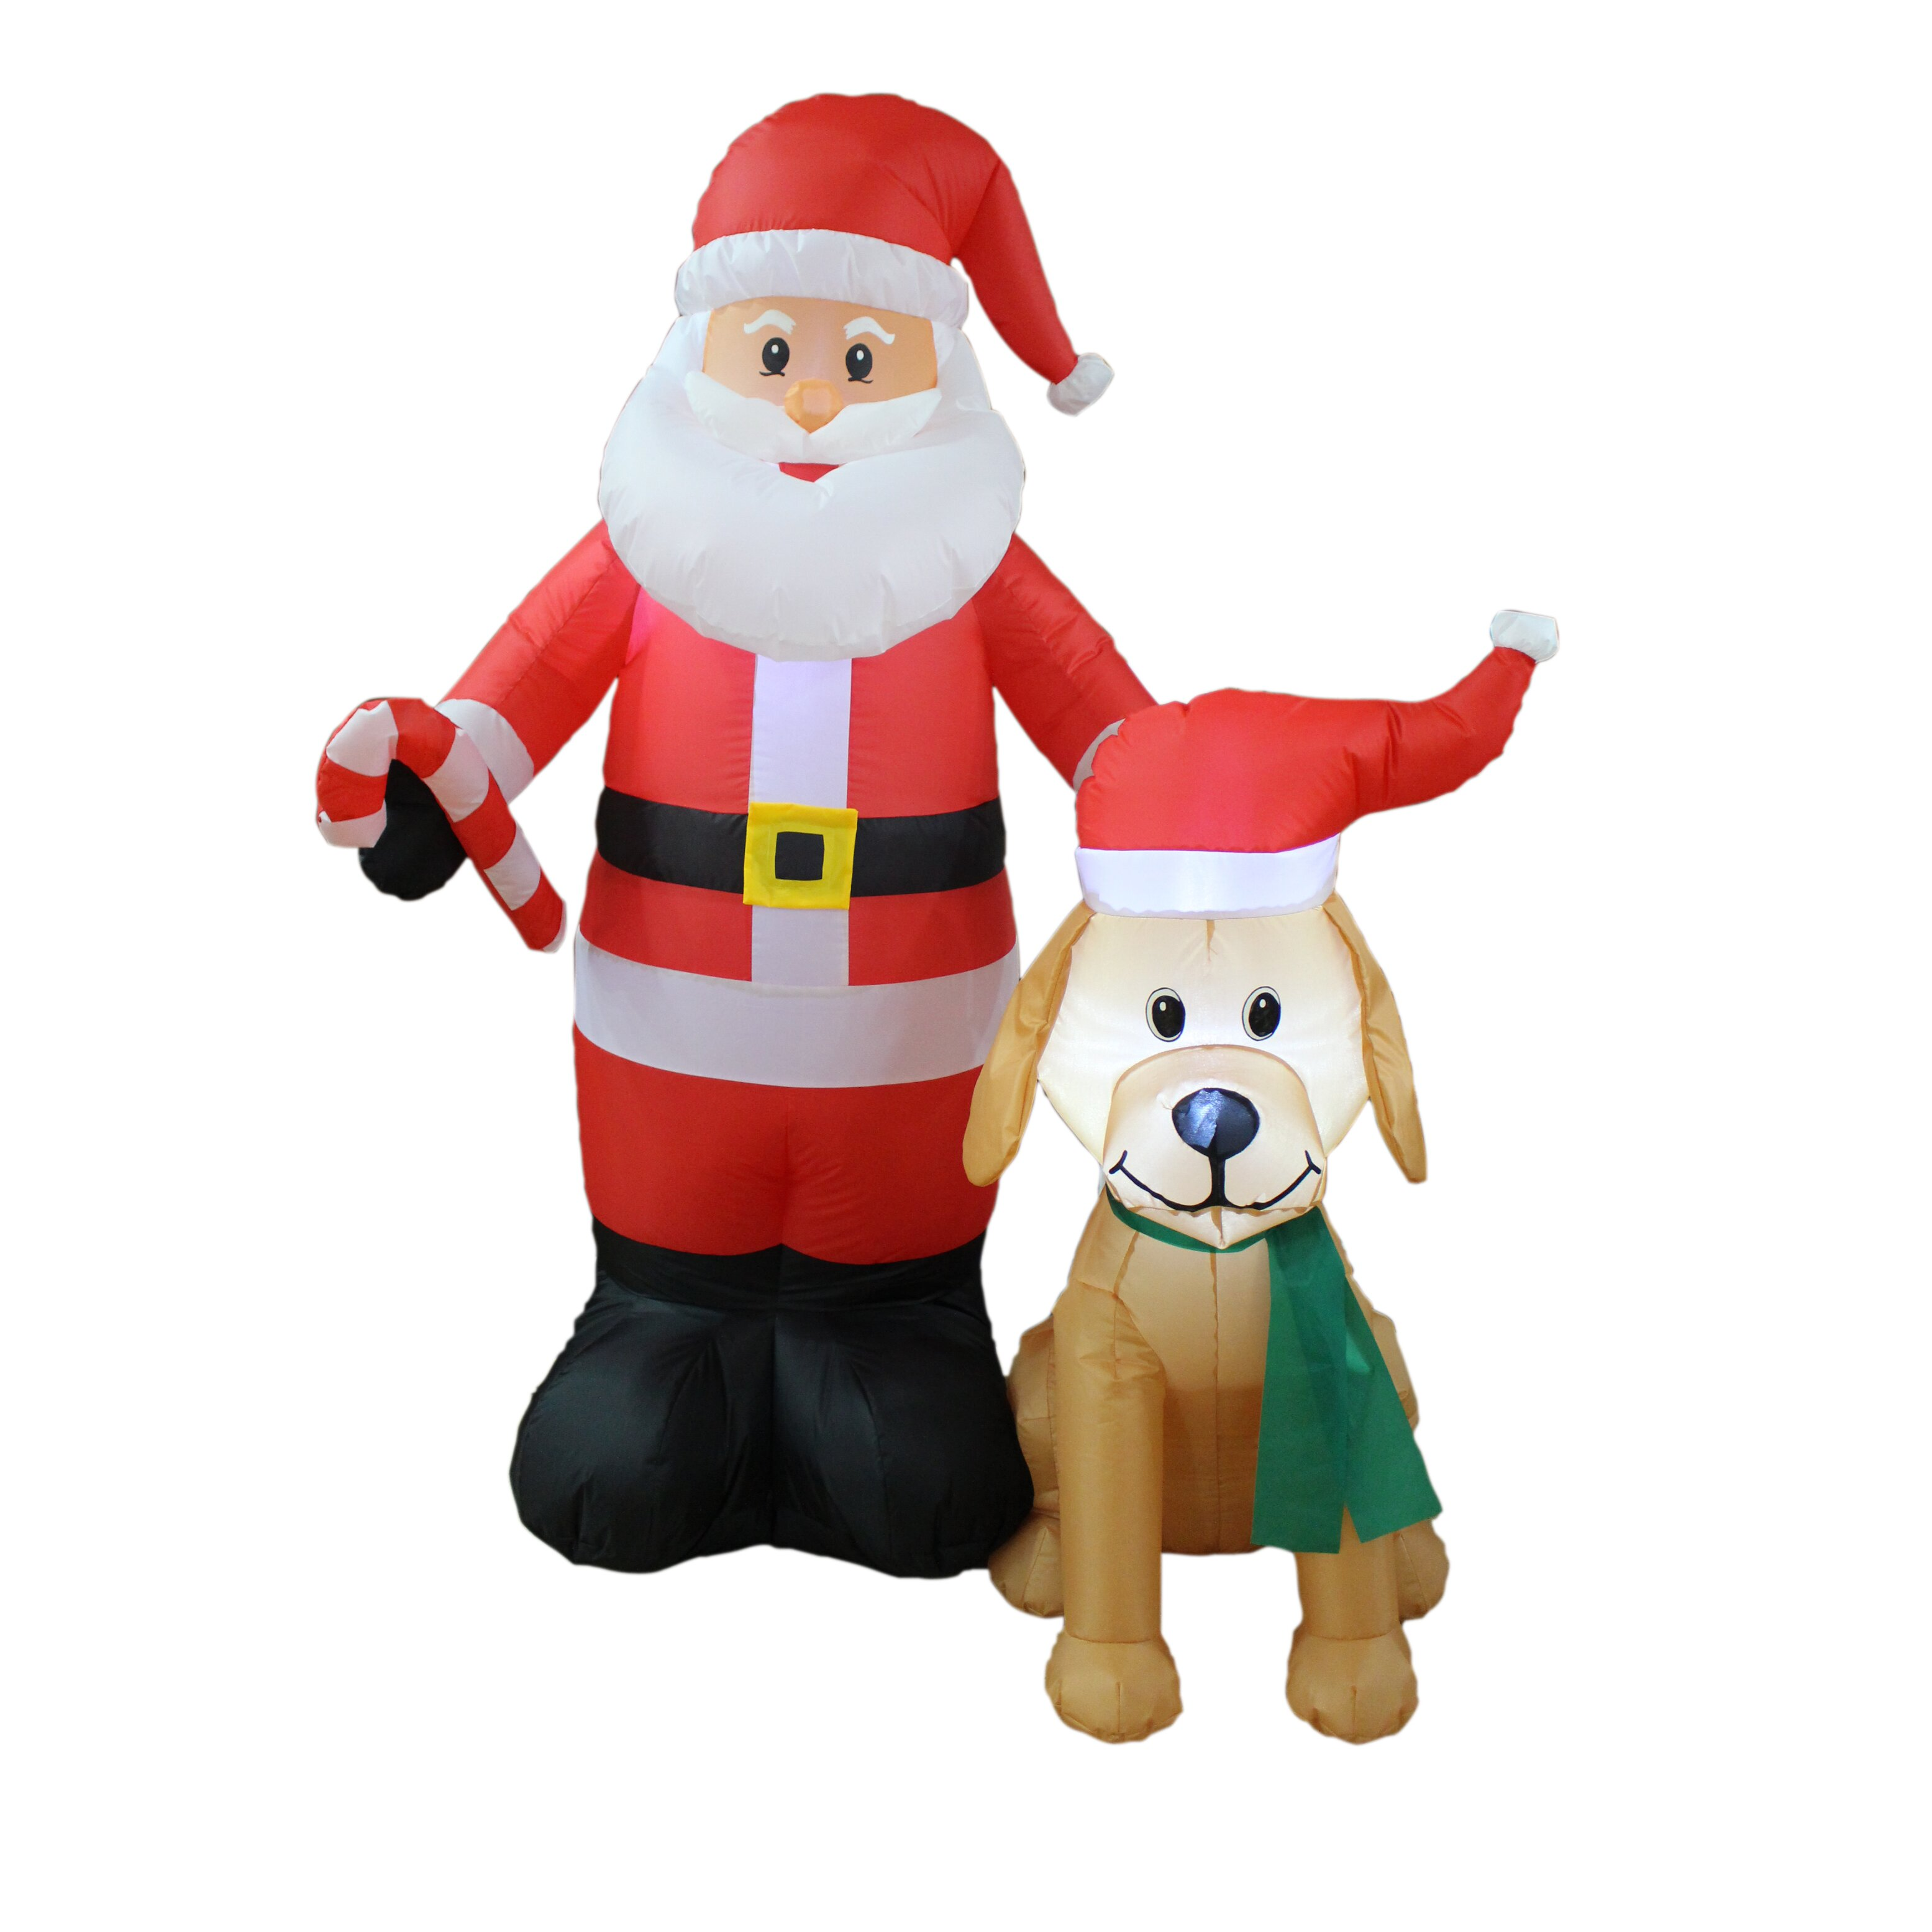 Bzb goods christmas inflatable santa claus with candy cane